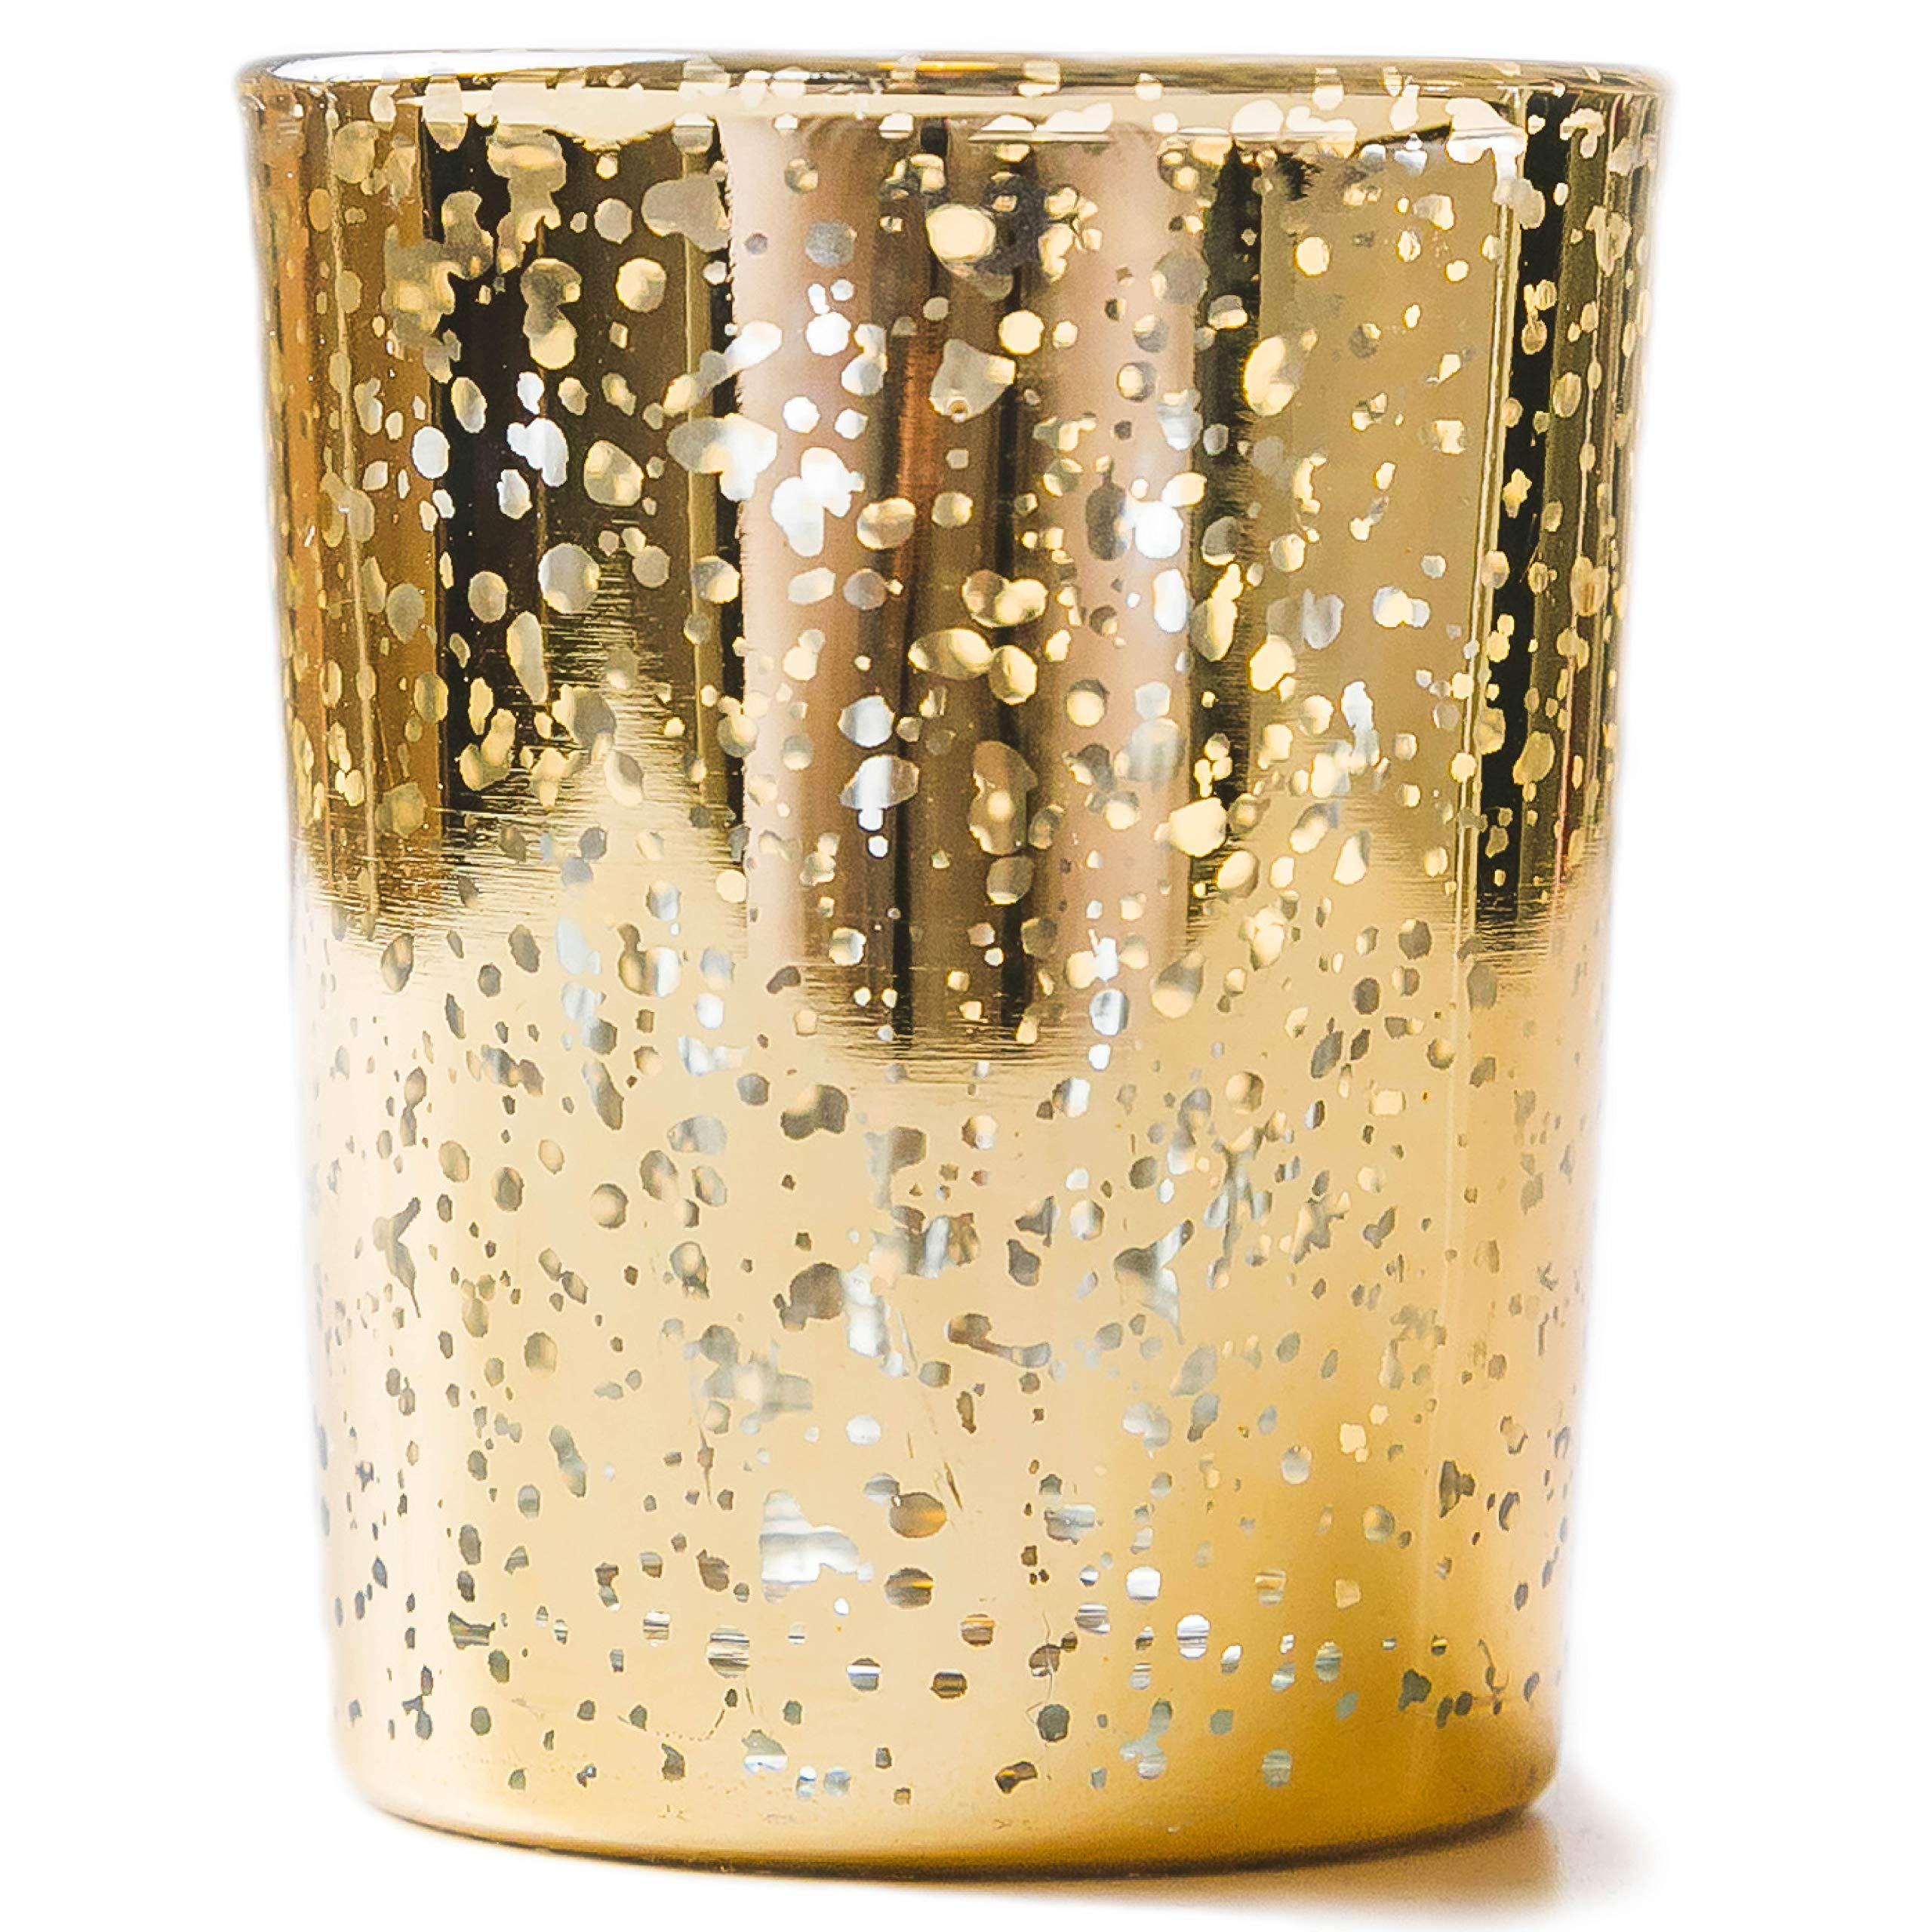 Vizayo Gold Votive Candle Holders, 24x Candle Holder for Small Candles and Tealight Candles -Stunning Wedding Decor and Bridal Shower Centerpieces for Tables. Mercury Glass Candle Holder Bulk Set.